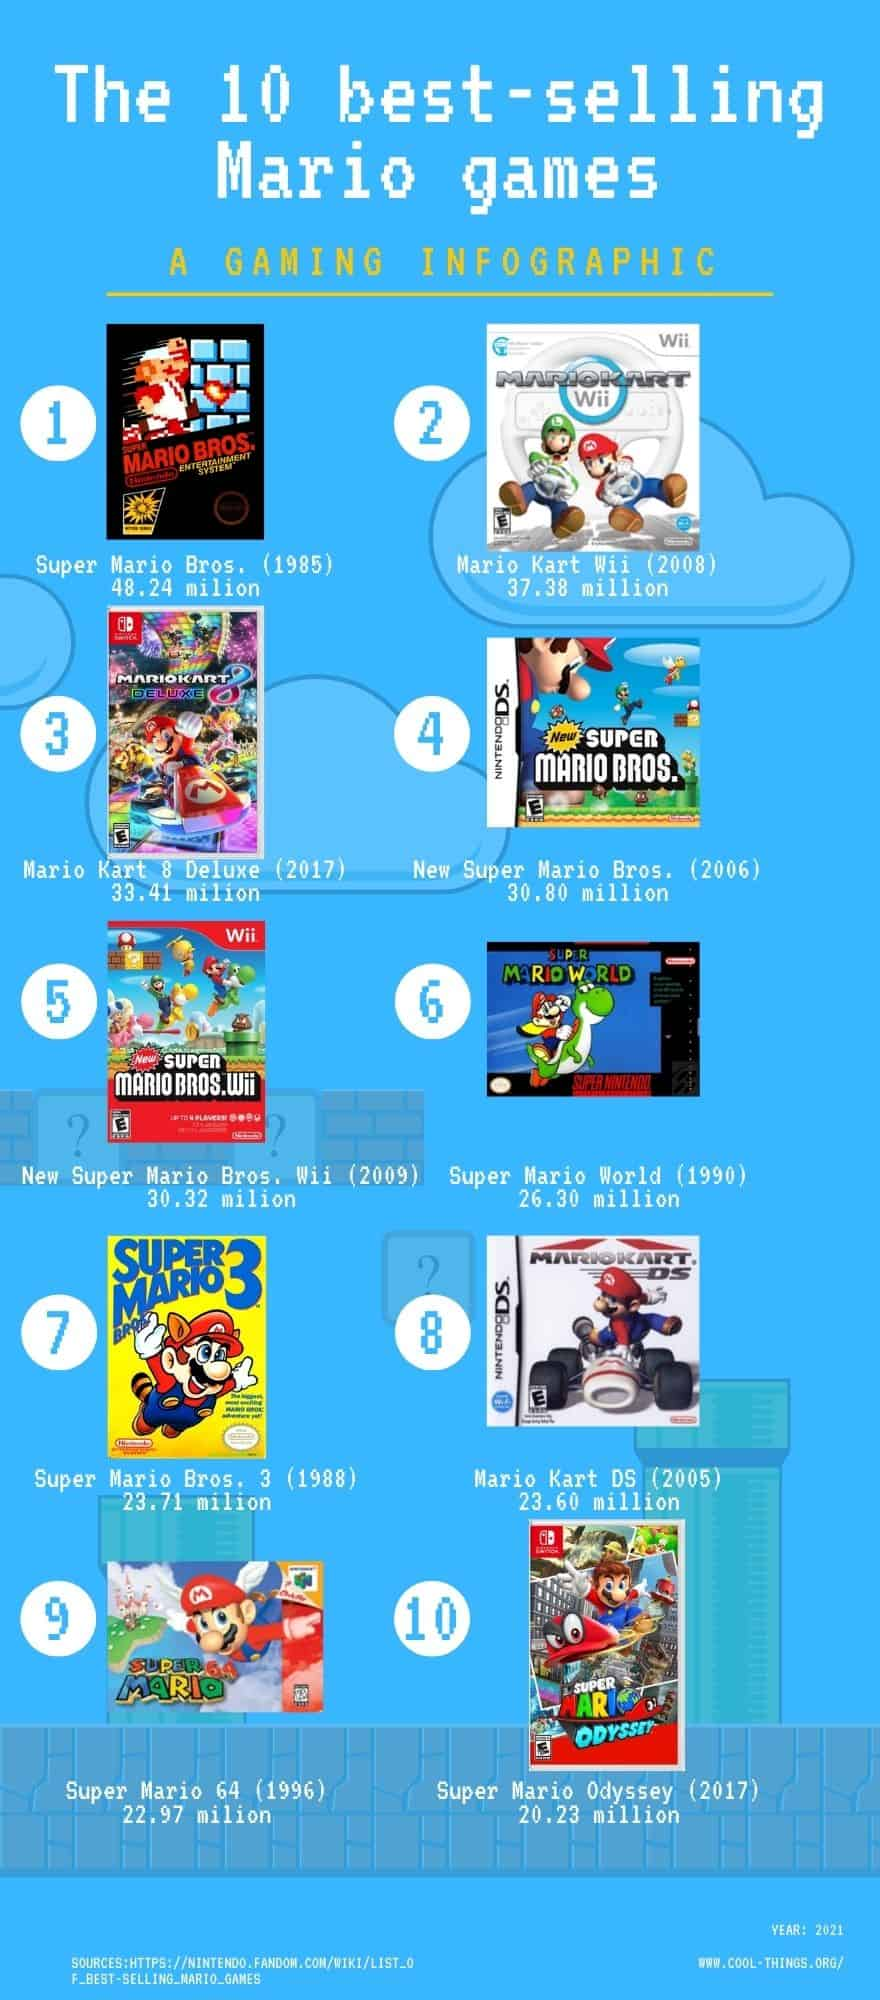 The best-selling Mario games